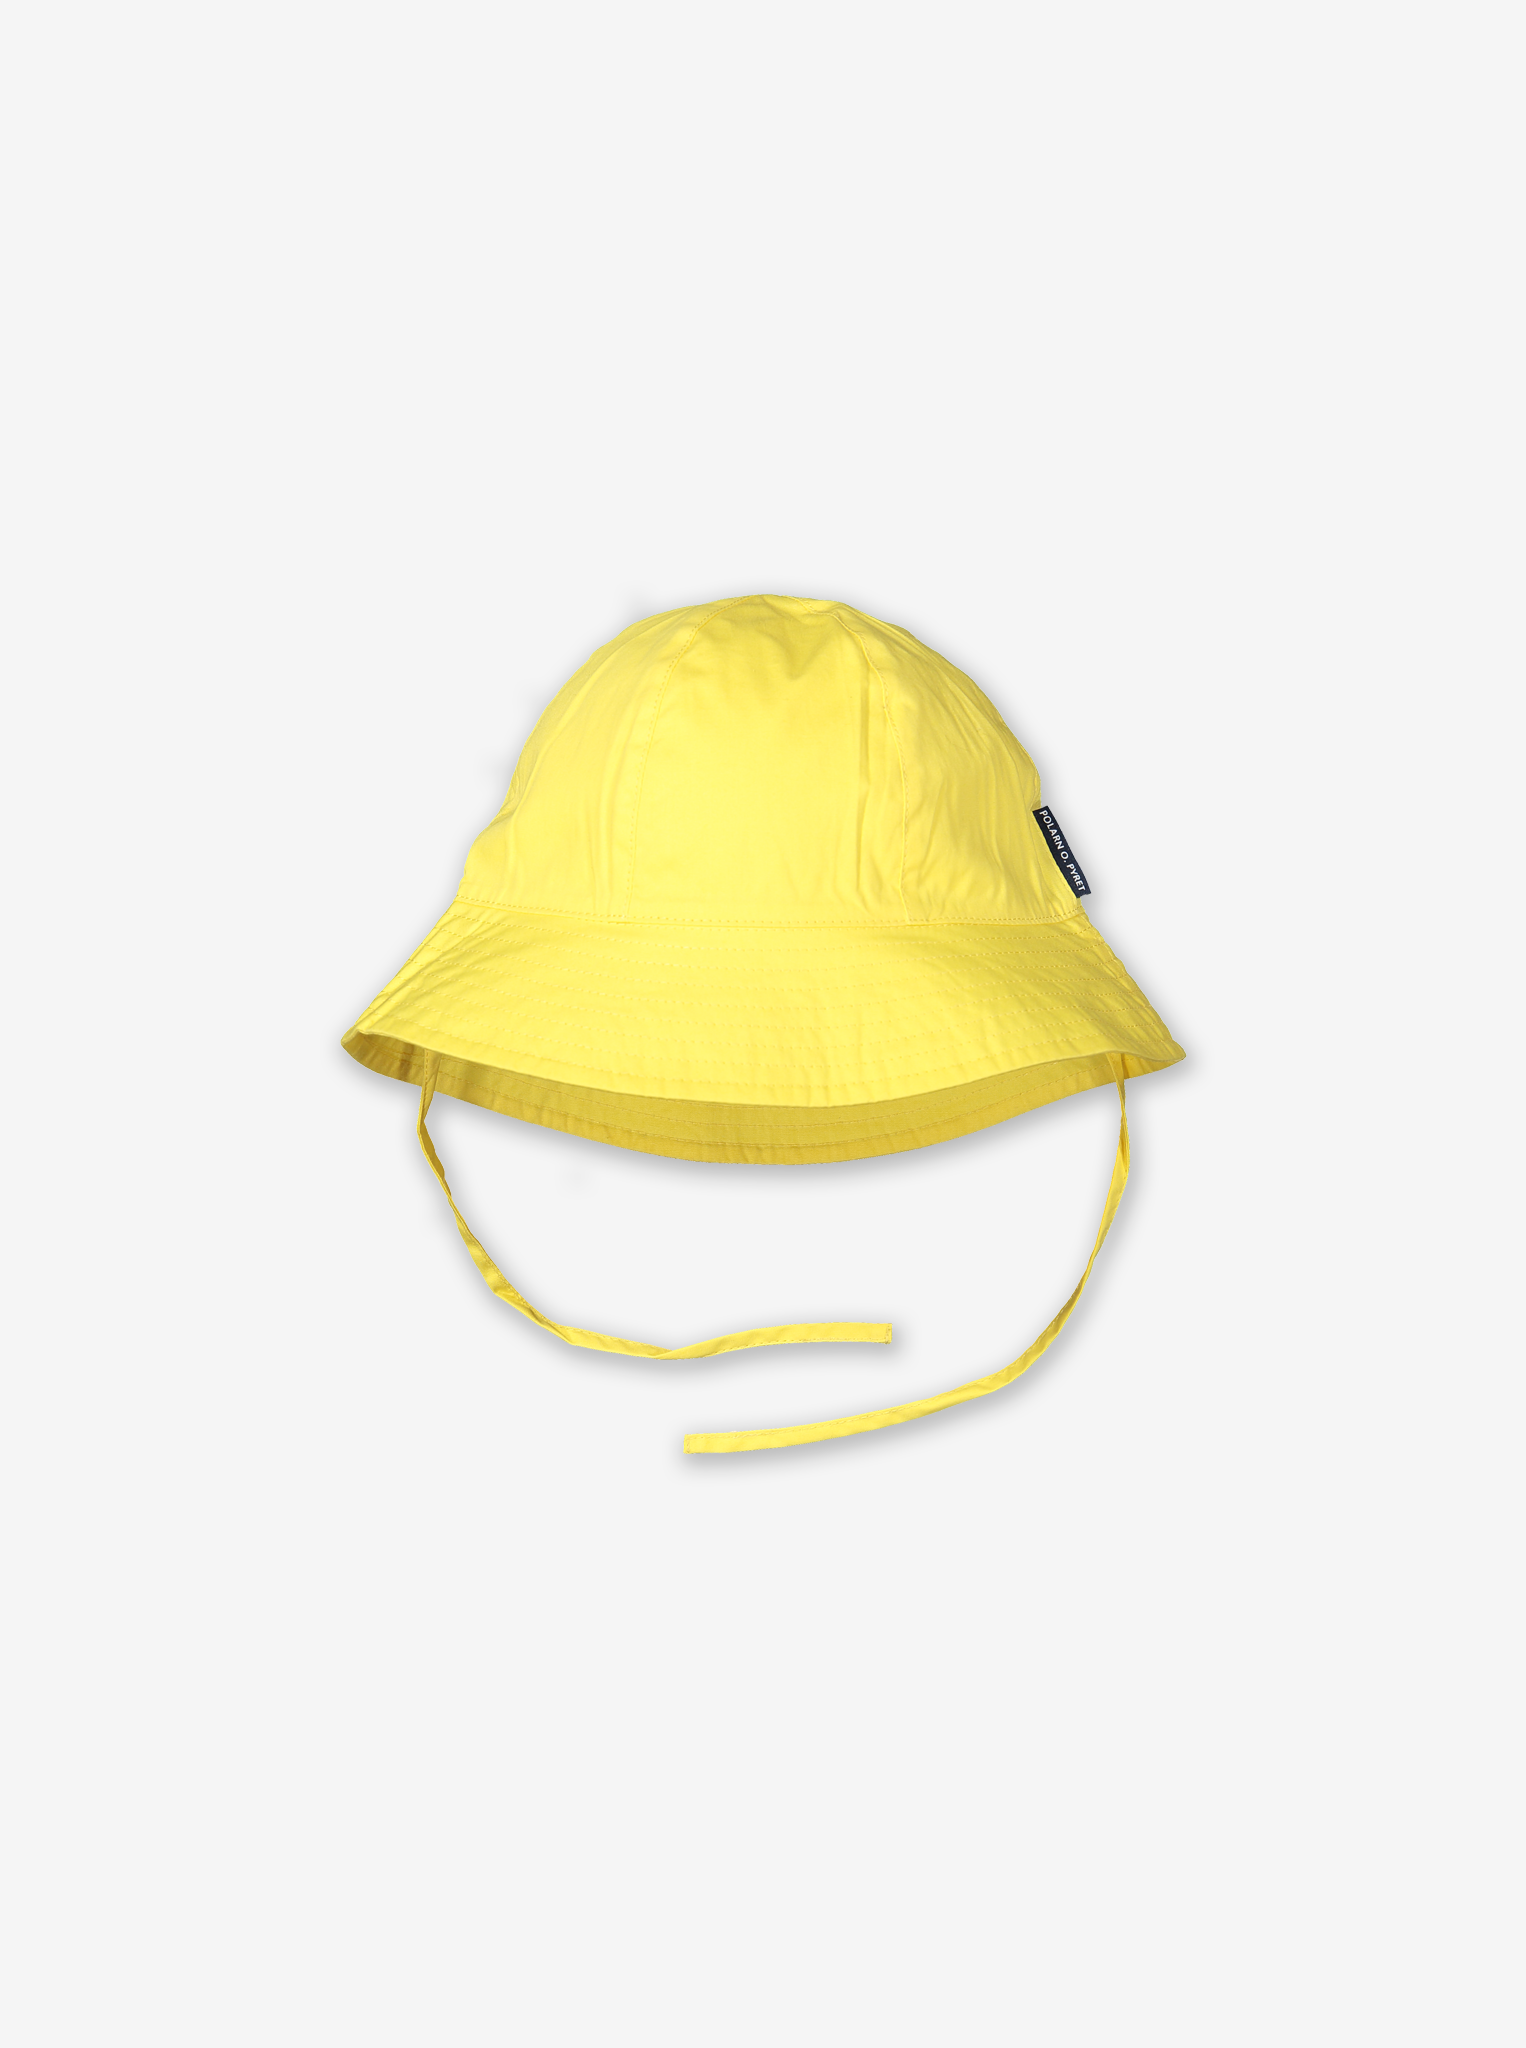 UV Kids Sun Hat-Unisex-1m-6y-Yellow